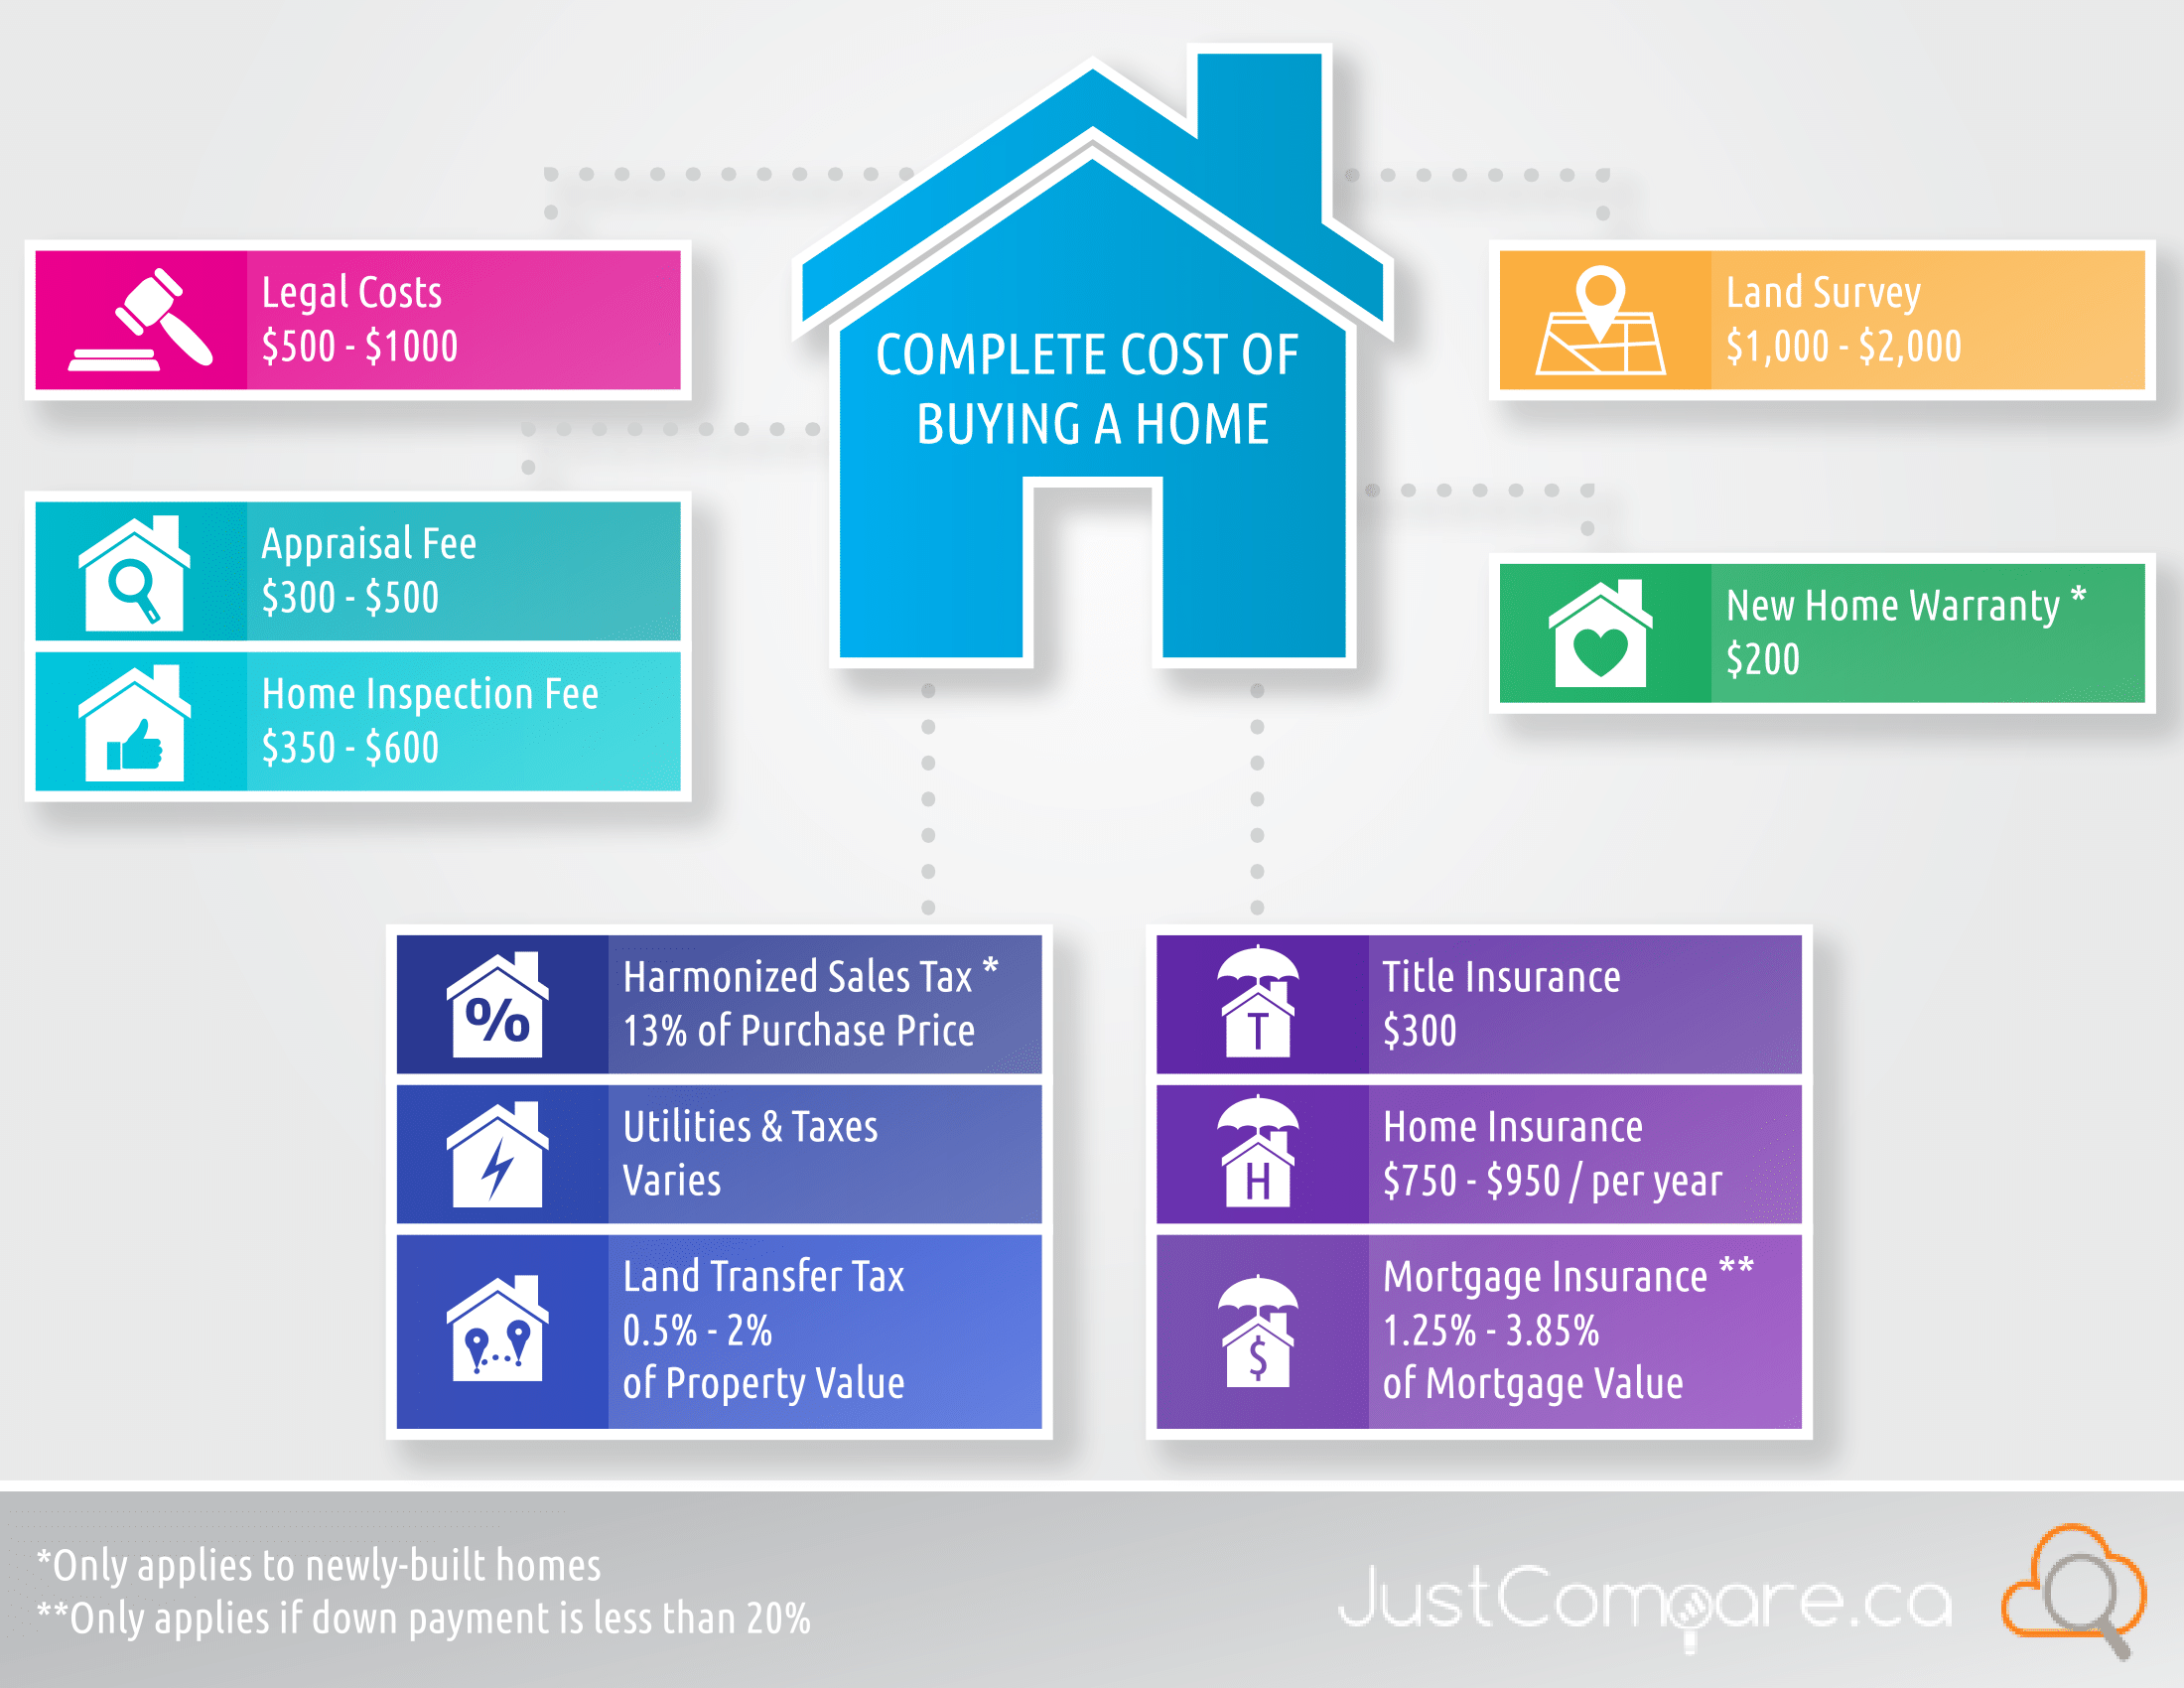 Complete Cost of Buying a Home